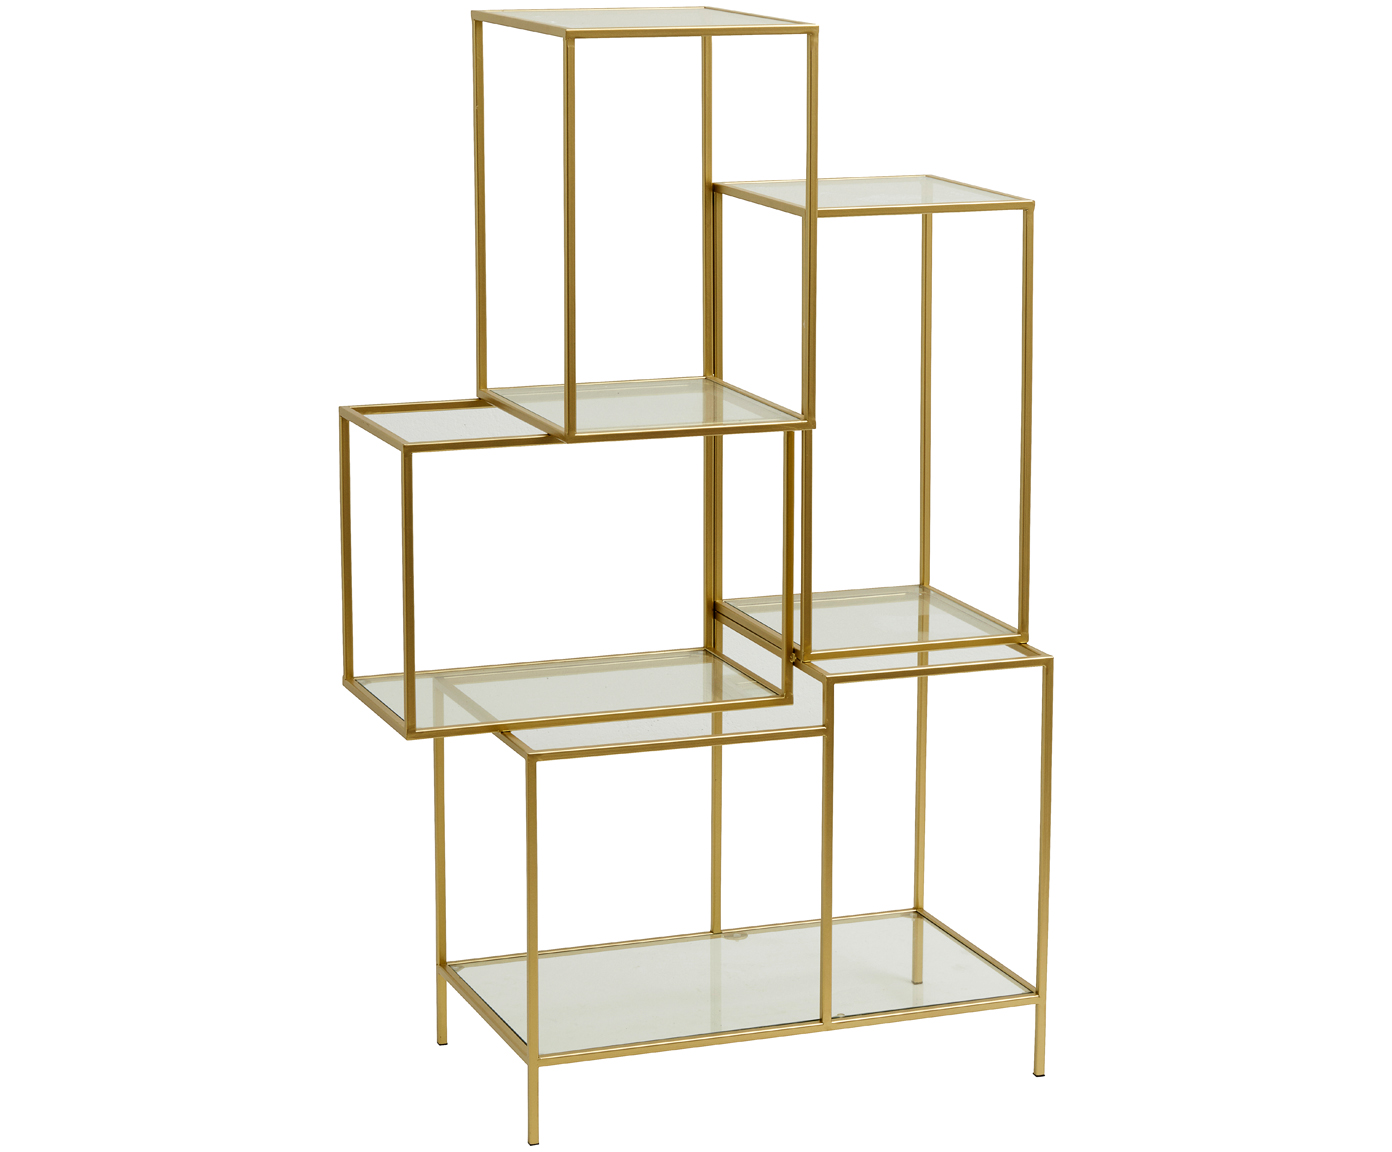 Goldfarbenes Metallregal Rack mit Glasböden